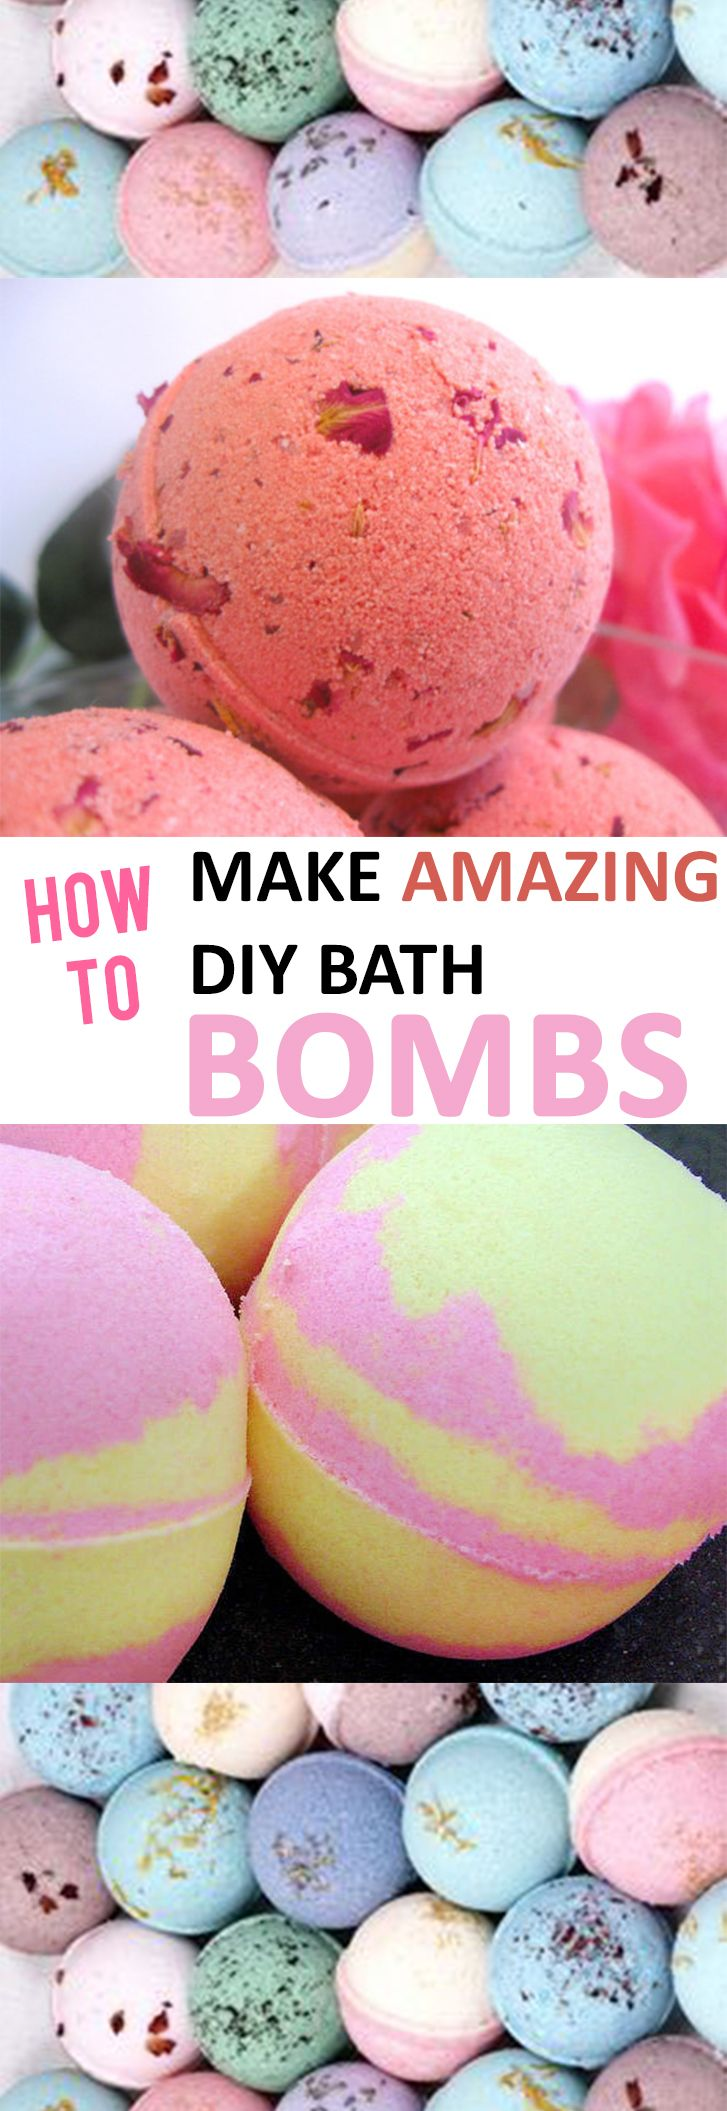 How to Make Amazing DIY Bath Bombs